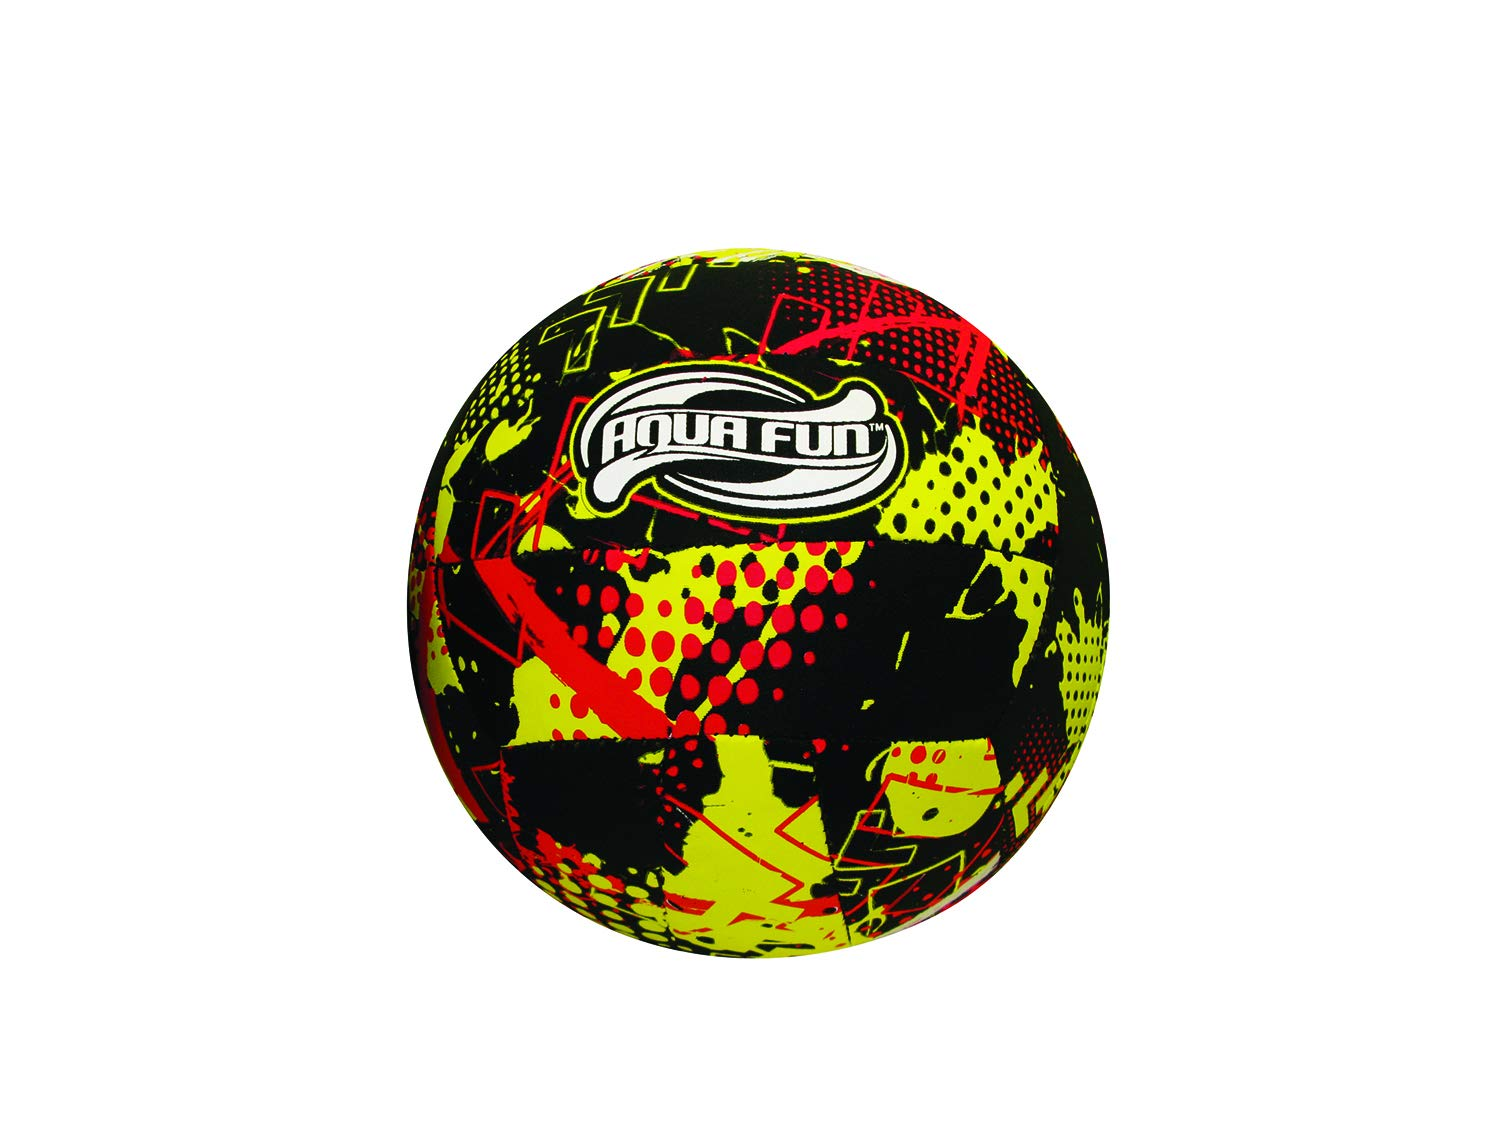 Poolmaster 72750 B007GB929G Poolmaster Active Xtreme X Ball Ball by Poolmaster B007GB929G, インドカレーのハリオン:453a6deb --- rigg.is